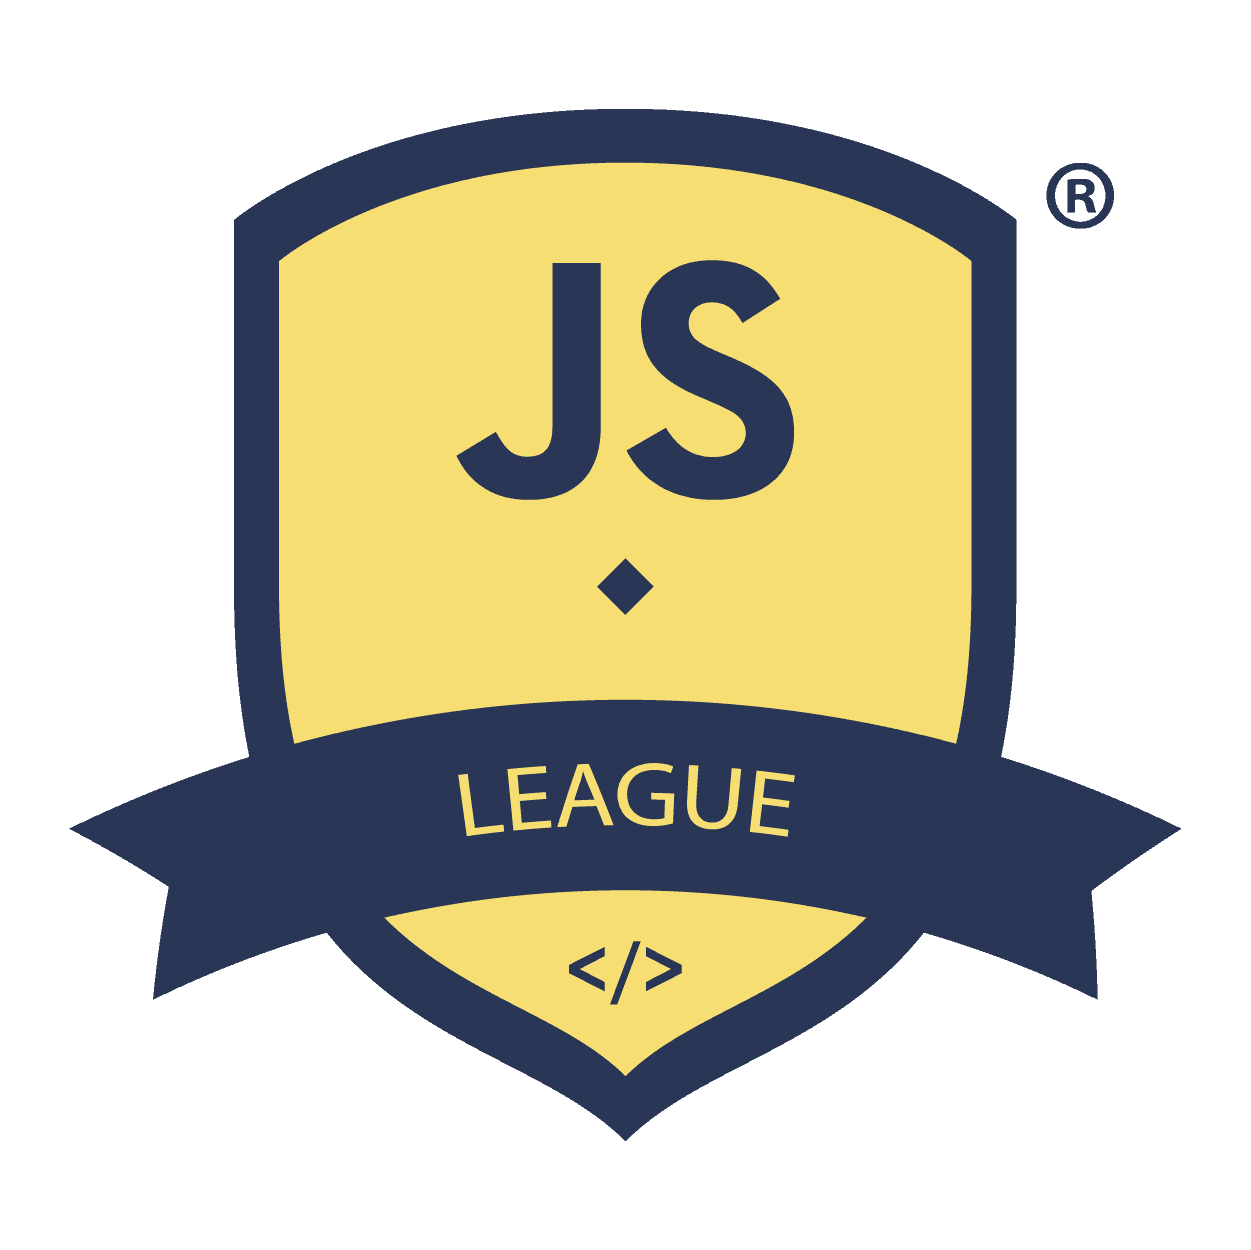 jsleague logo big